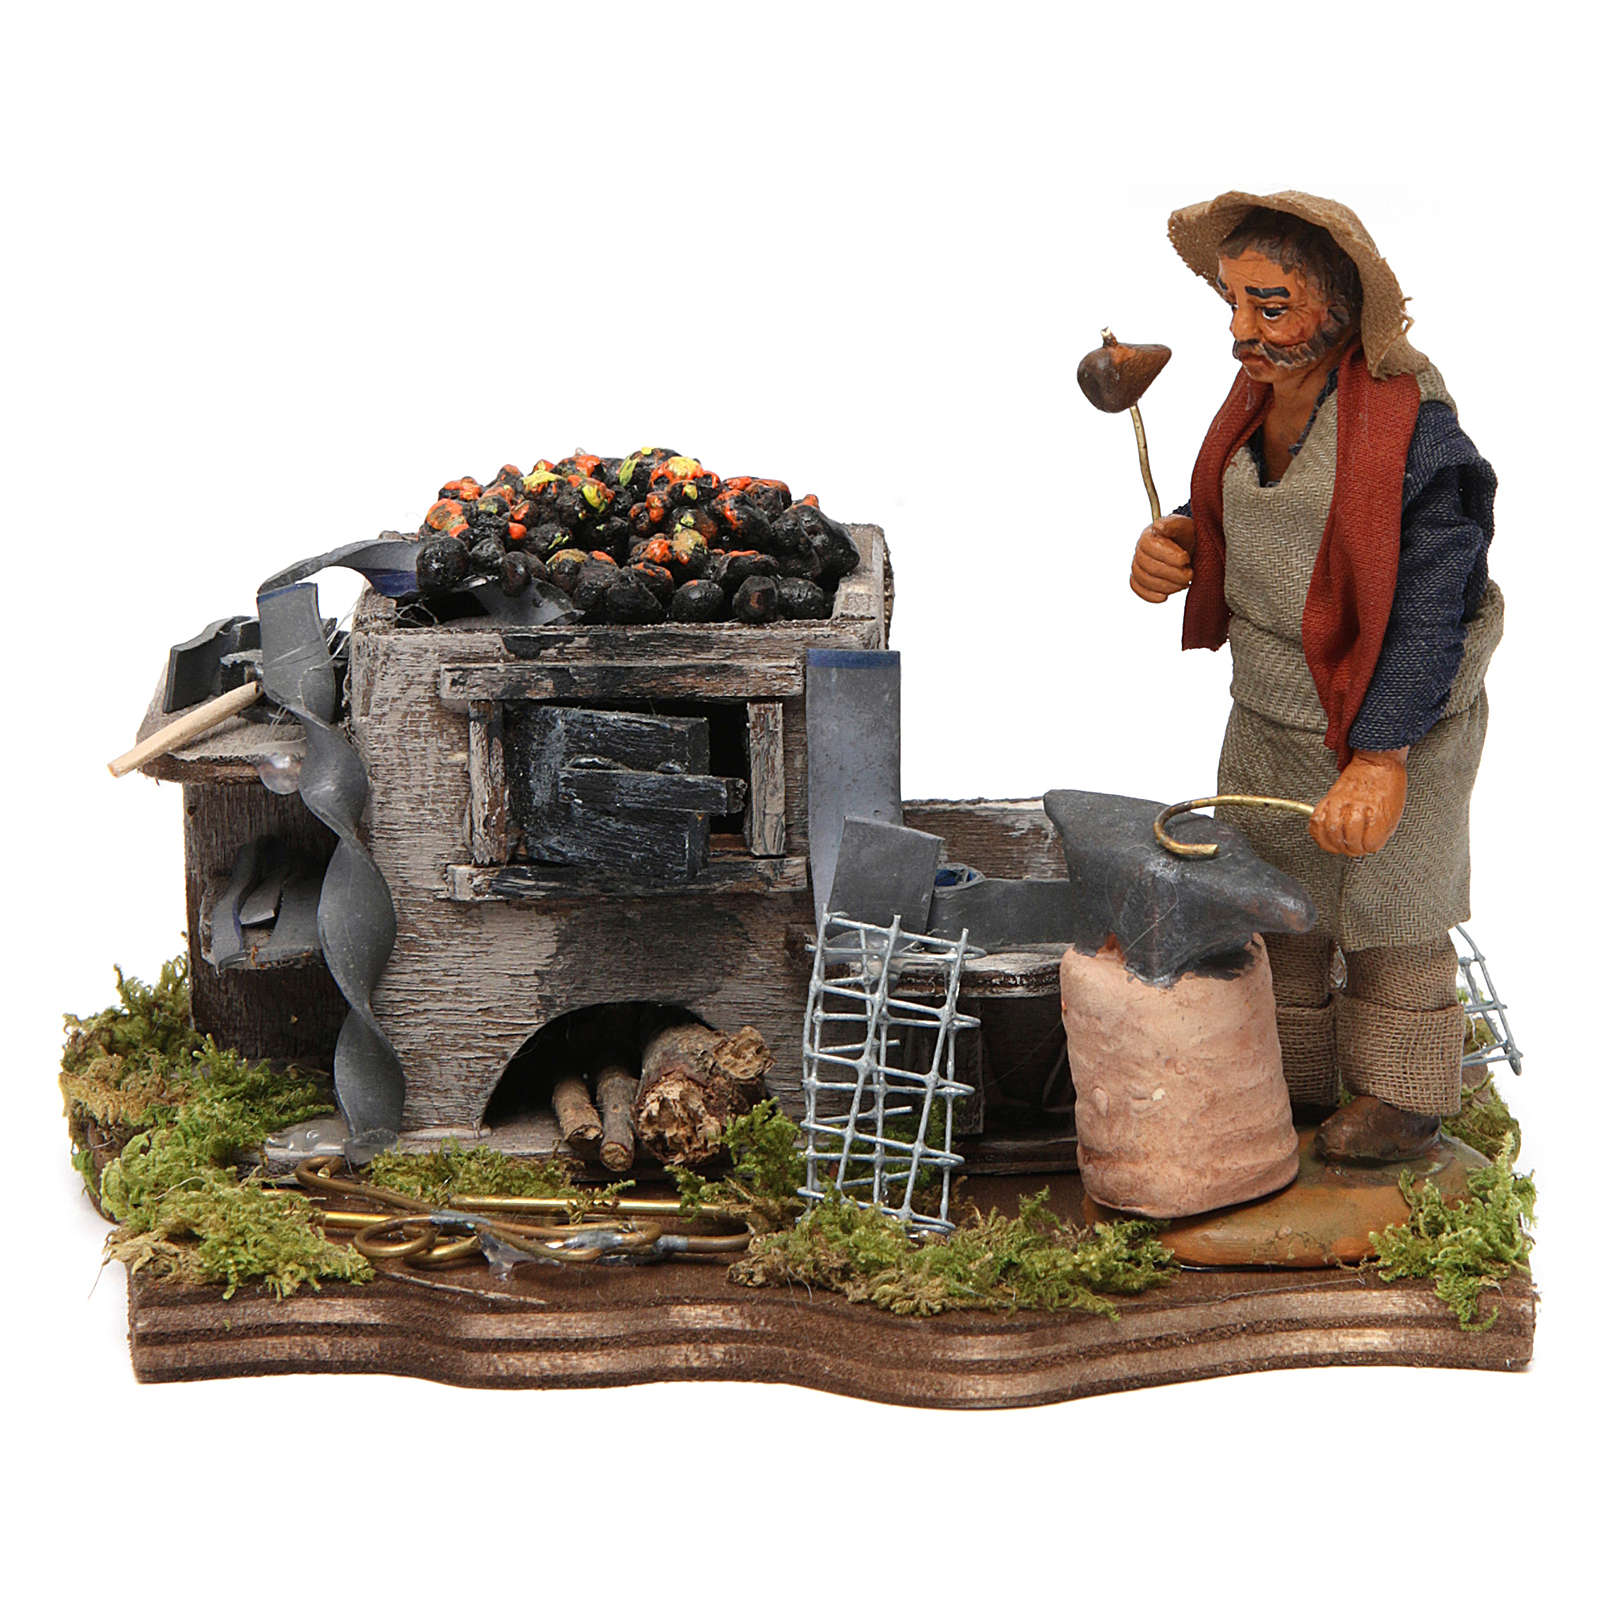 Blacksmith with forge, Neapolitan nativity figurine, 10cm 4